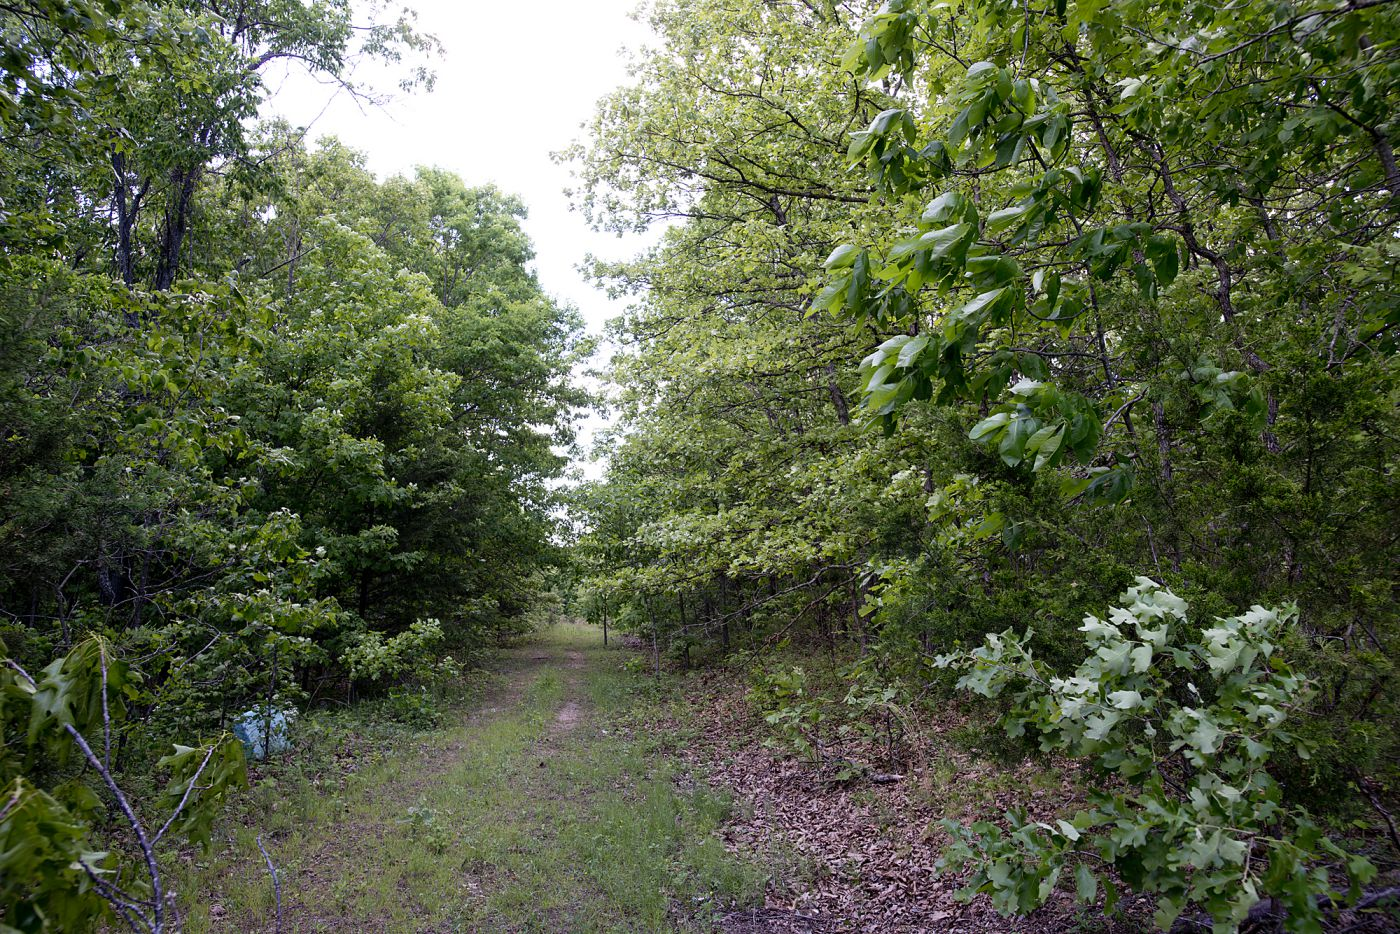 Sold 5 Acres In Morgan County Mo Three Land Guys